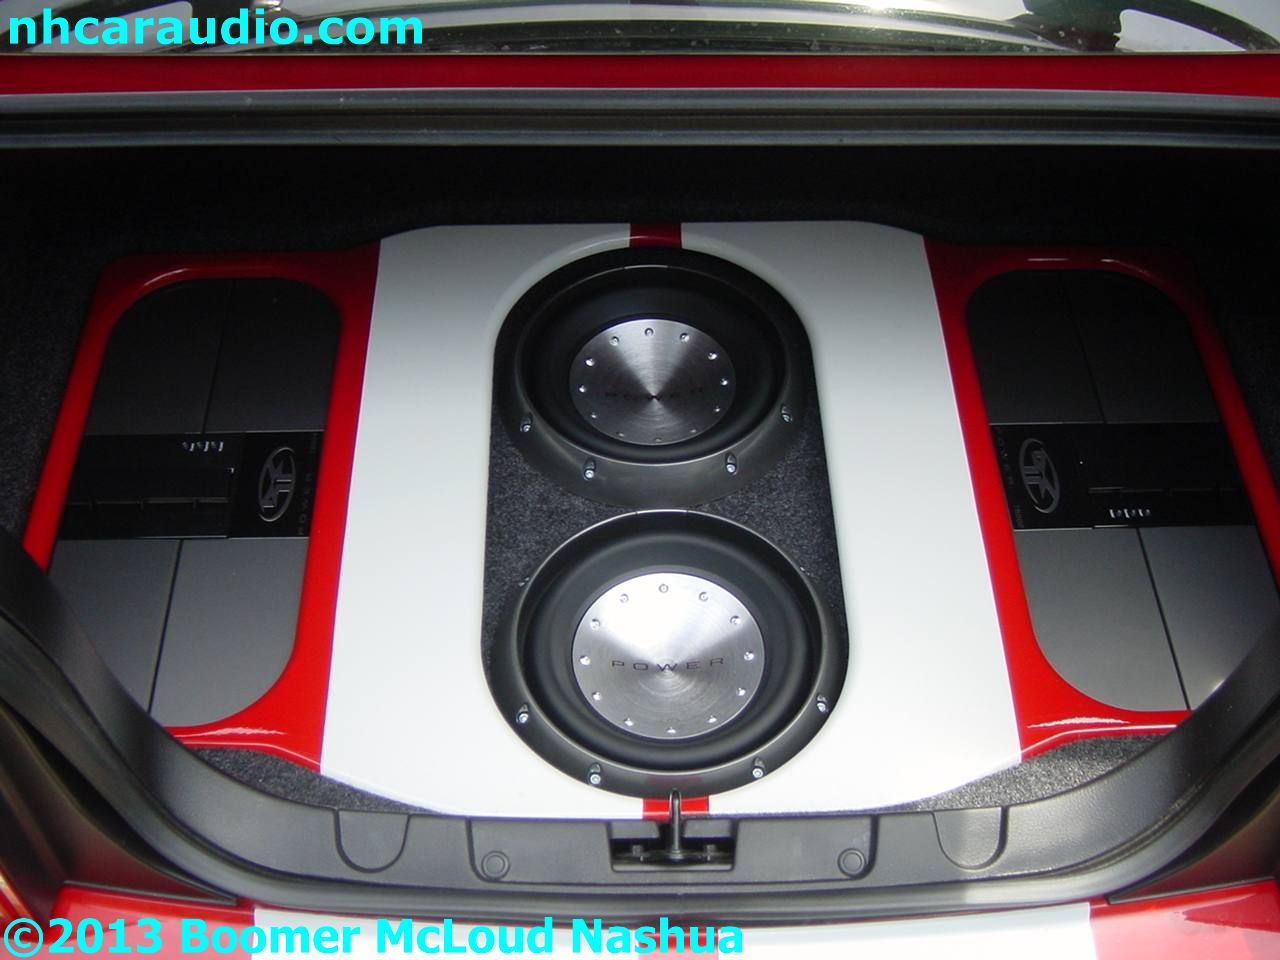 2013 Nissan Frontier Stereo Wiring Mustang Custom Trunk Subwoofer Amplifier Install